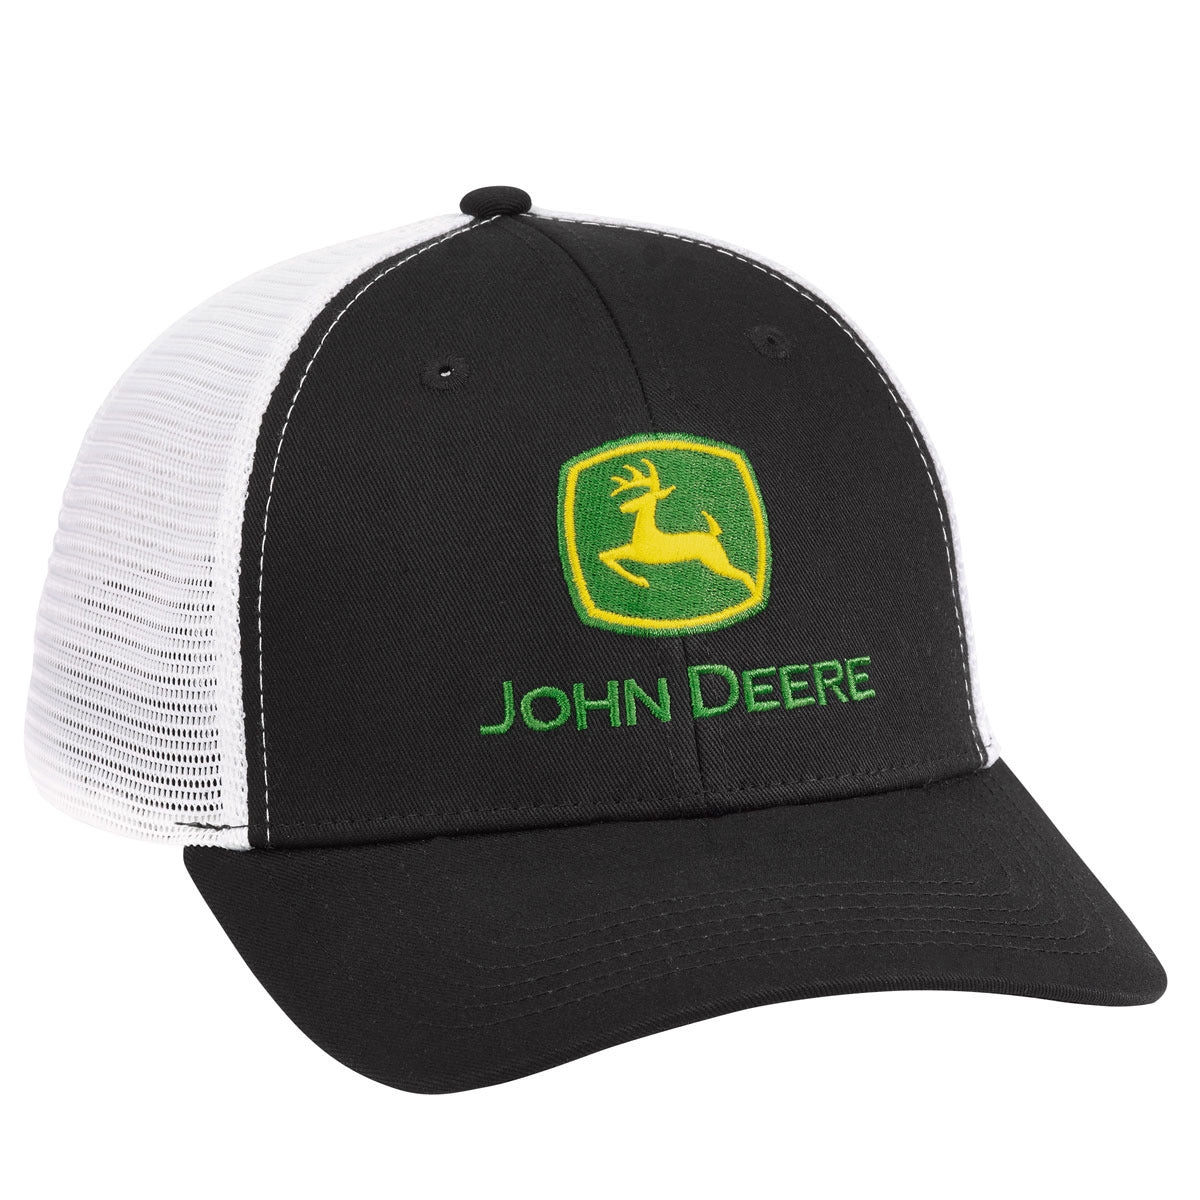 John Deere Chino Twill/Soft Cap - LP69107